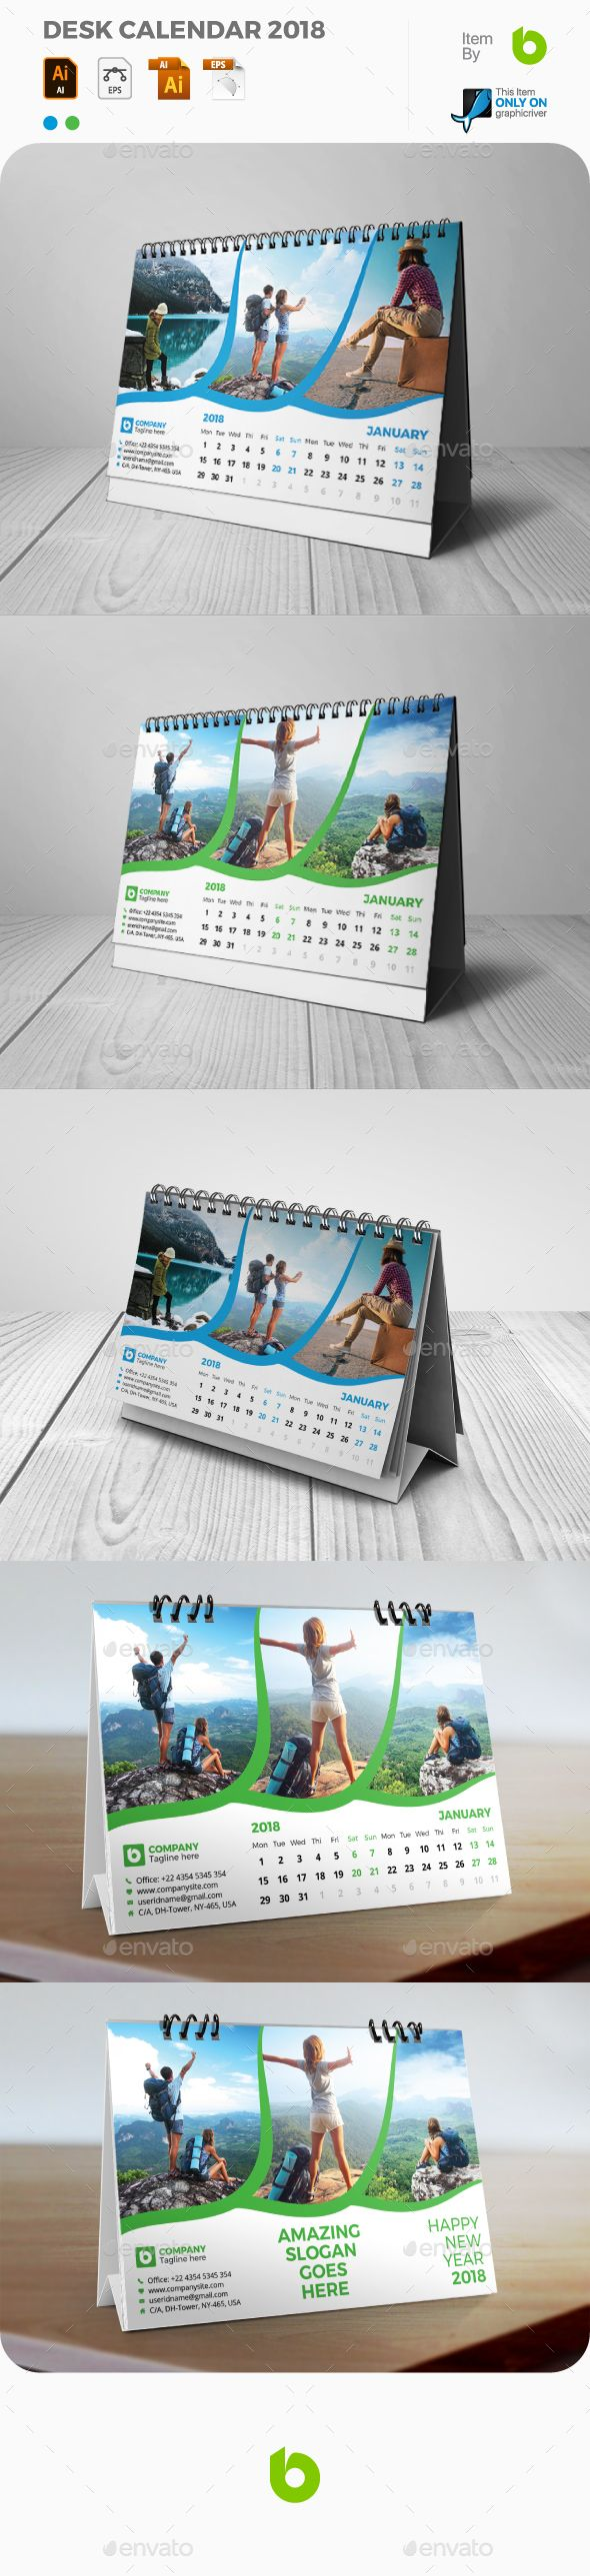 Desk Calendar 2018 - #Calendars #Stationery